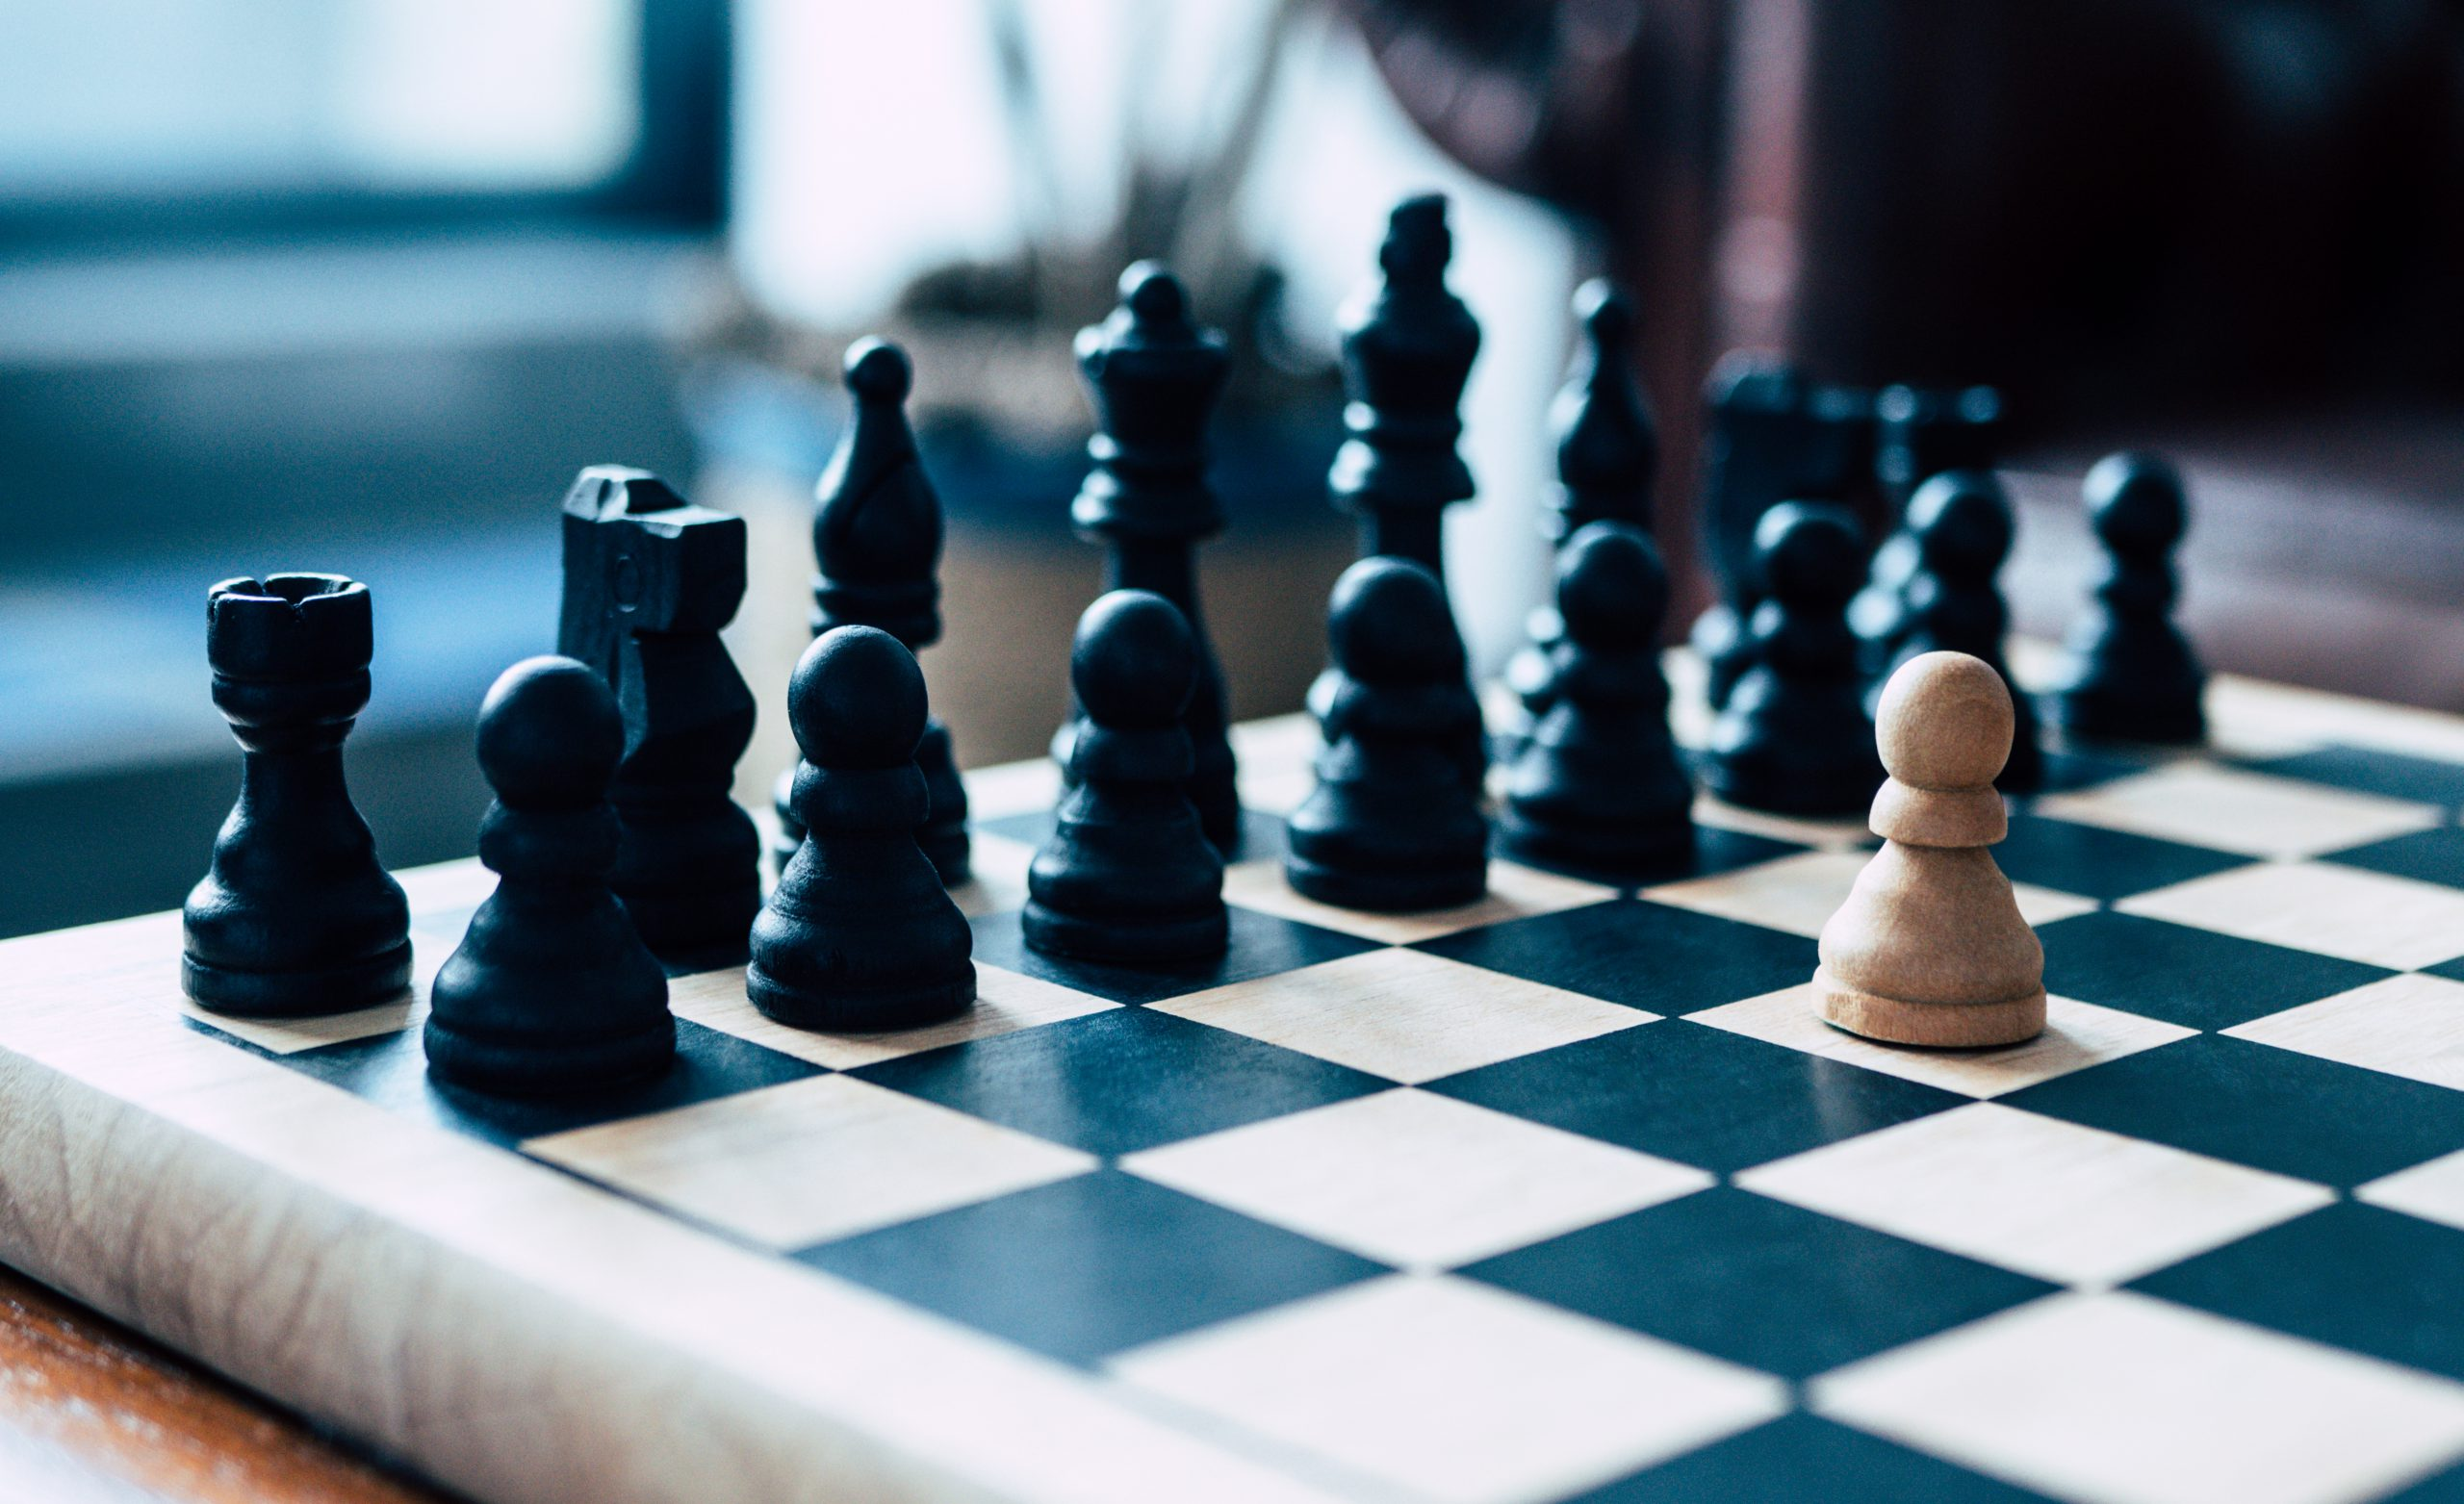 single pawn against full set of chess pieces